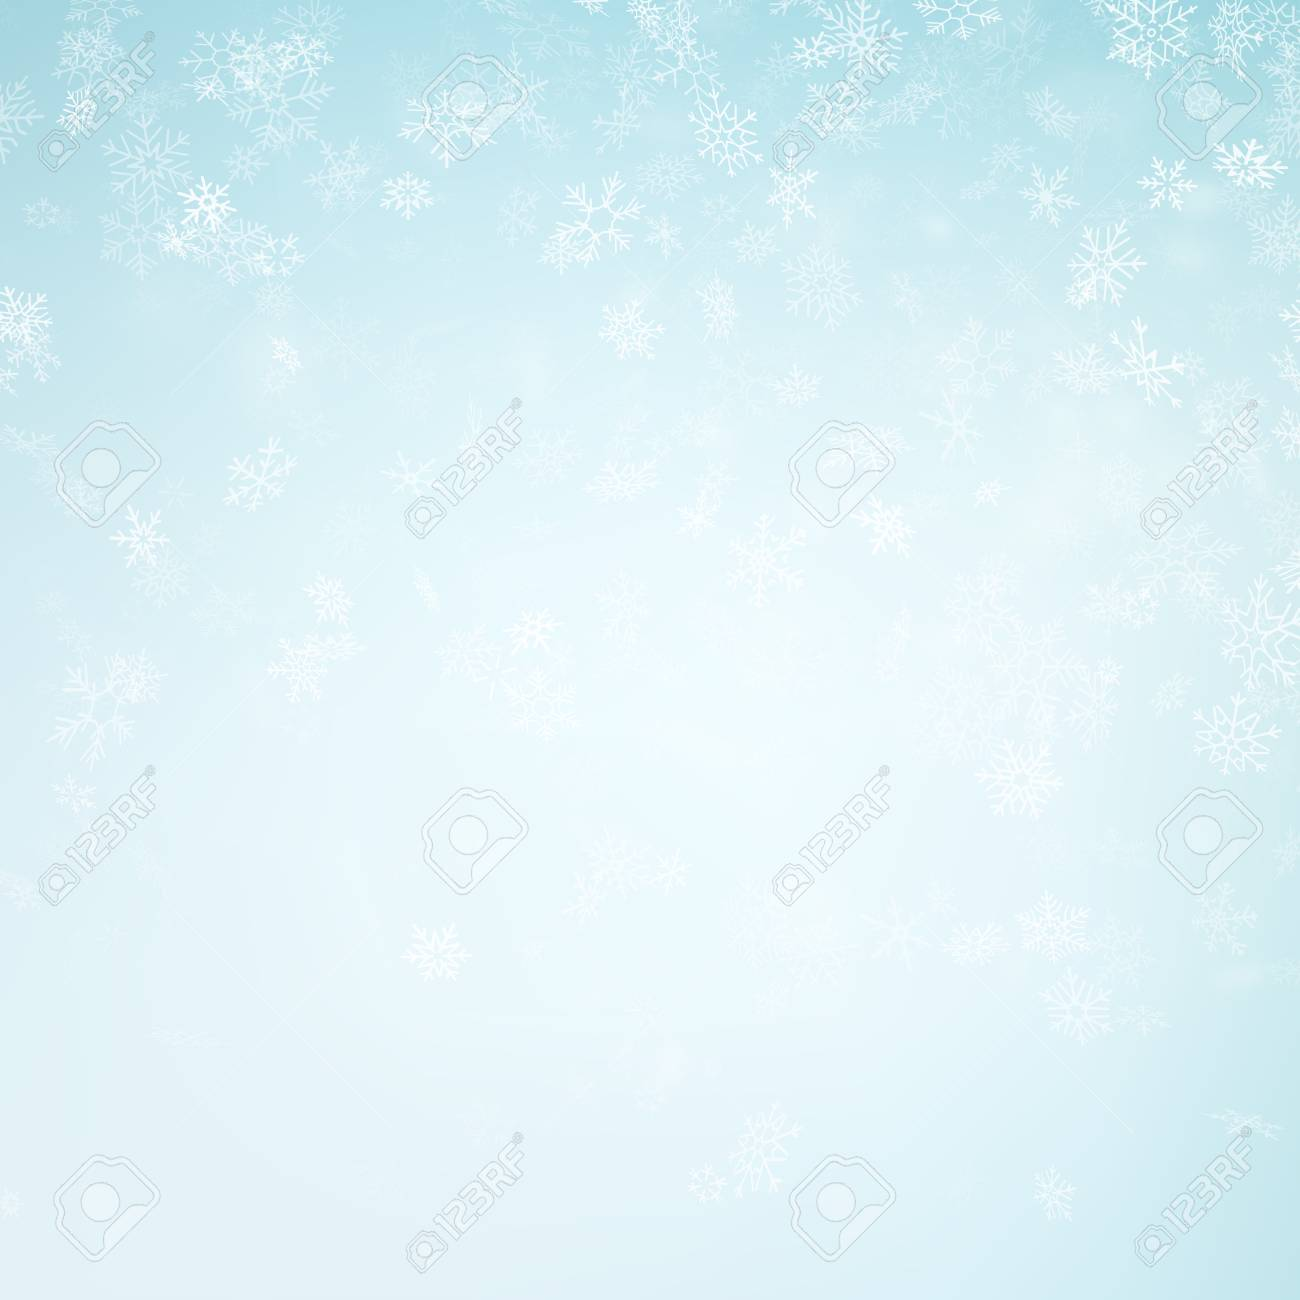 Abstract Christmas background with snowflakes. Elegant blue winter template. Eps 10 vector file - 126193176